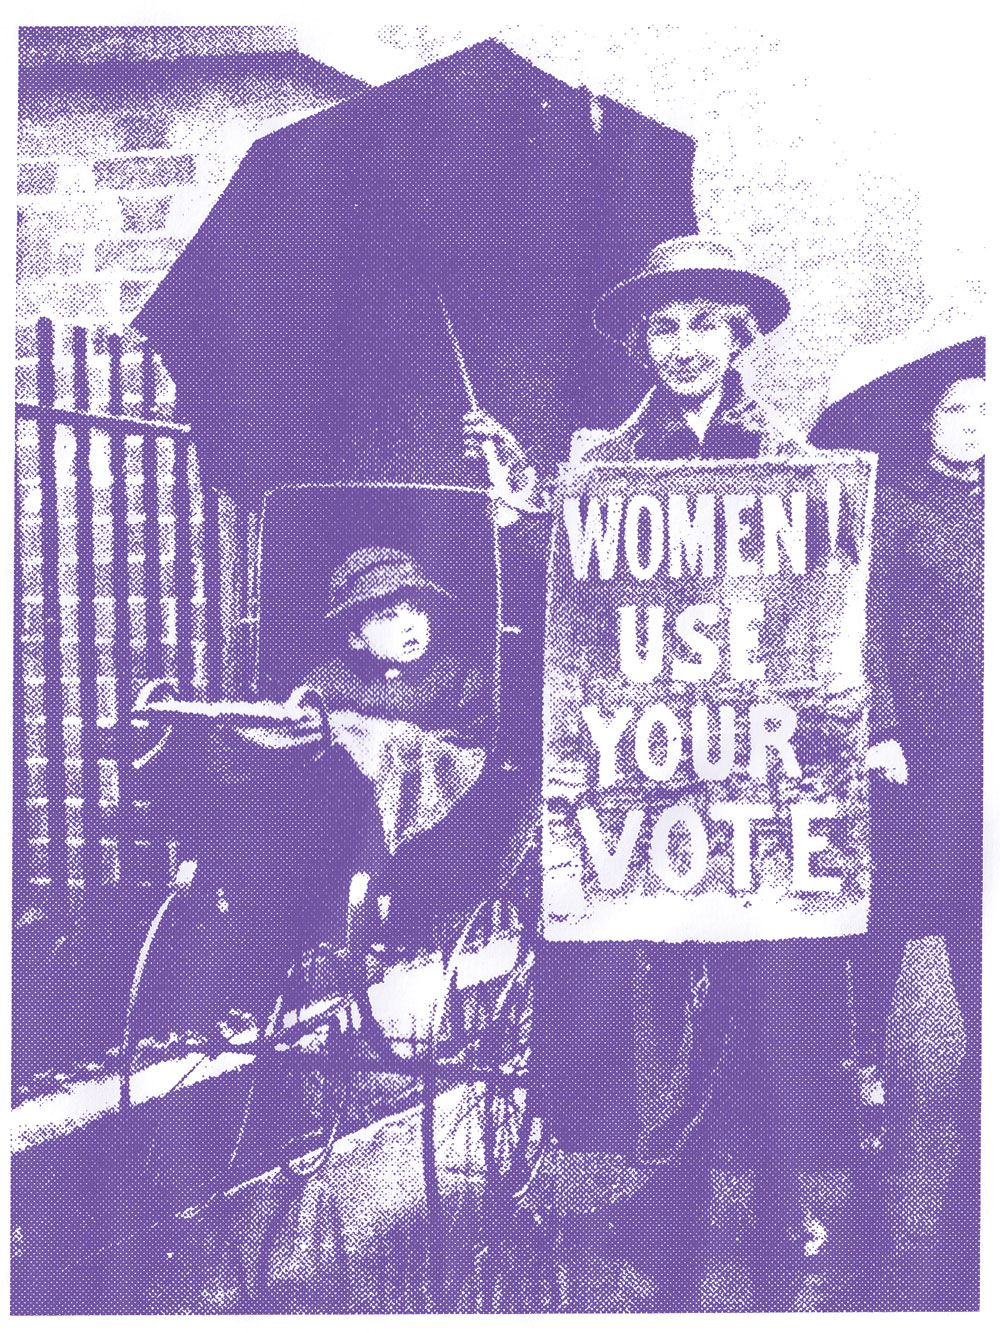 International_Womens_Day-Womens_Votes_01.jpg